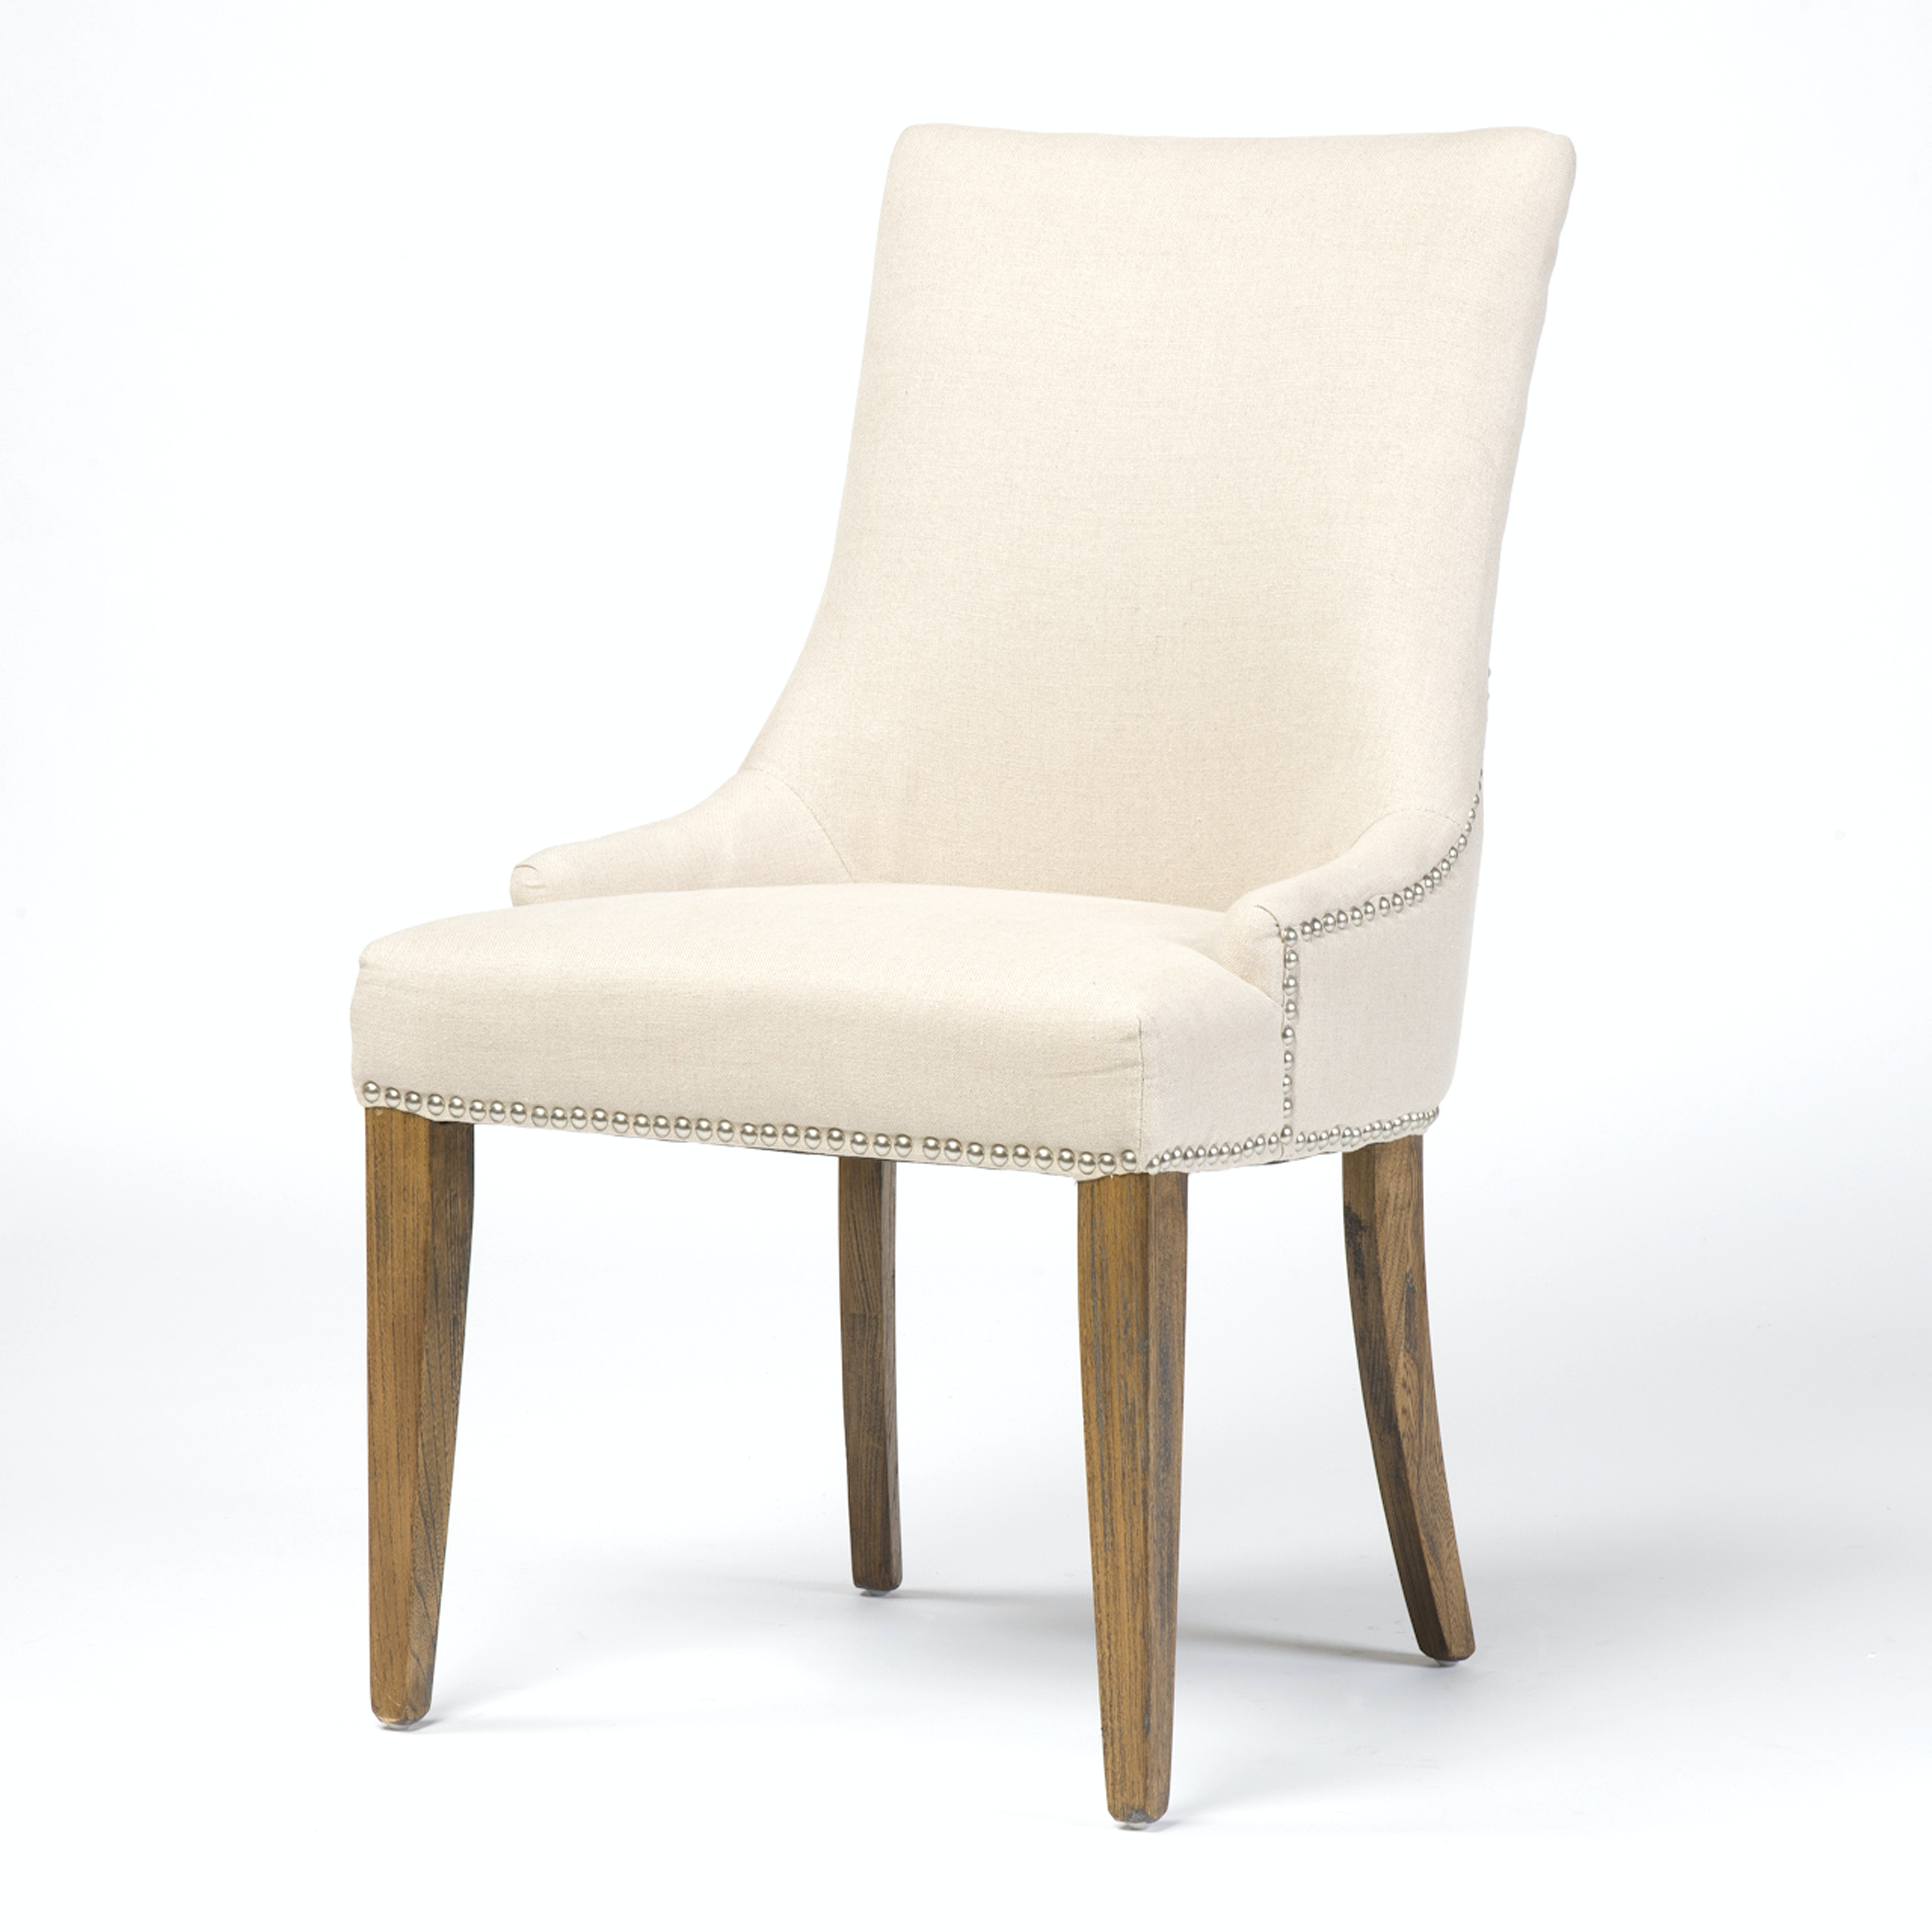 Four Hands Furniture Sadie Dining Chair-Linen CASH-06GP-05  sc 1 st  Goodu0027s Home Furnishings & Four Hands Furniture CASH-06GP-05 Dining Room Sadie Dining Chair-Linen